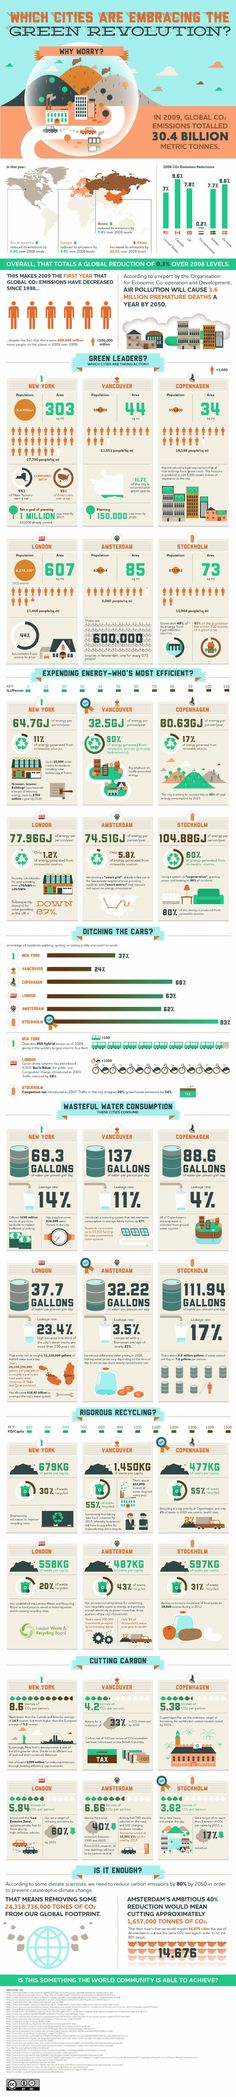 Amazing infographic - What Are The World's Greenest Cities?